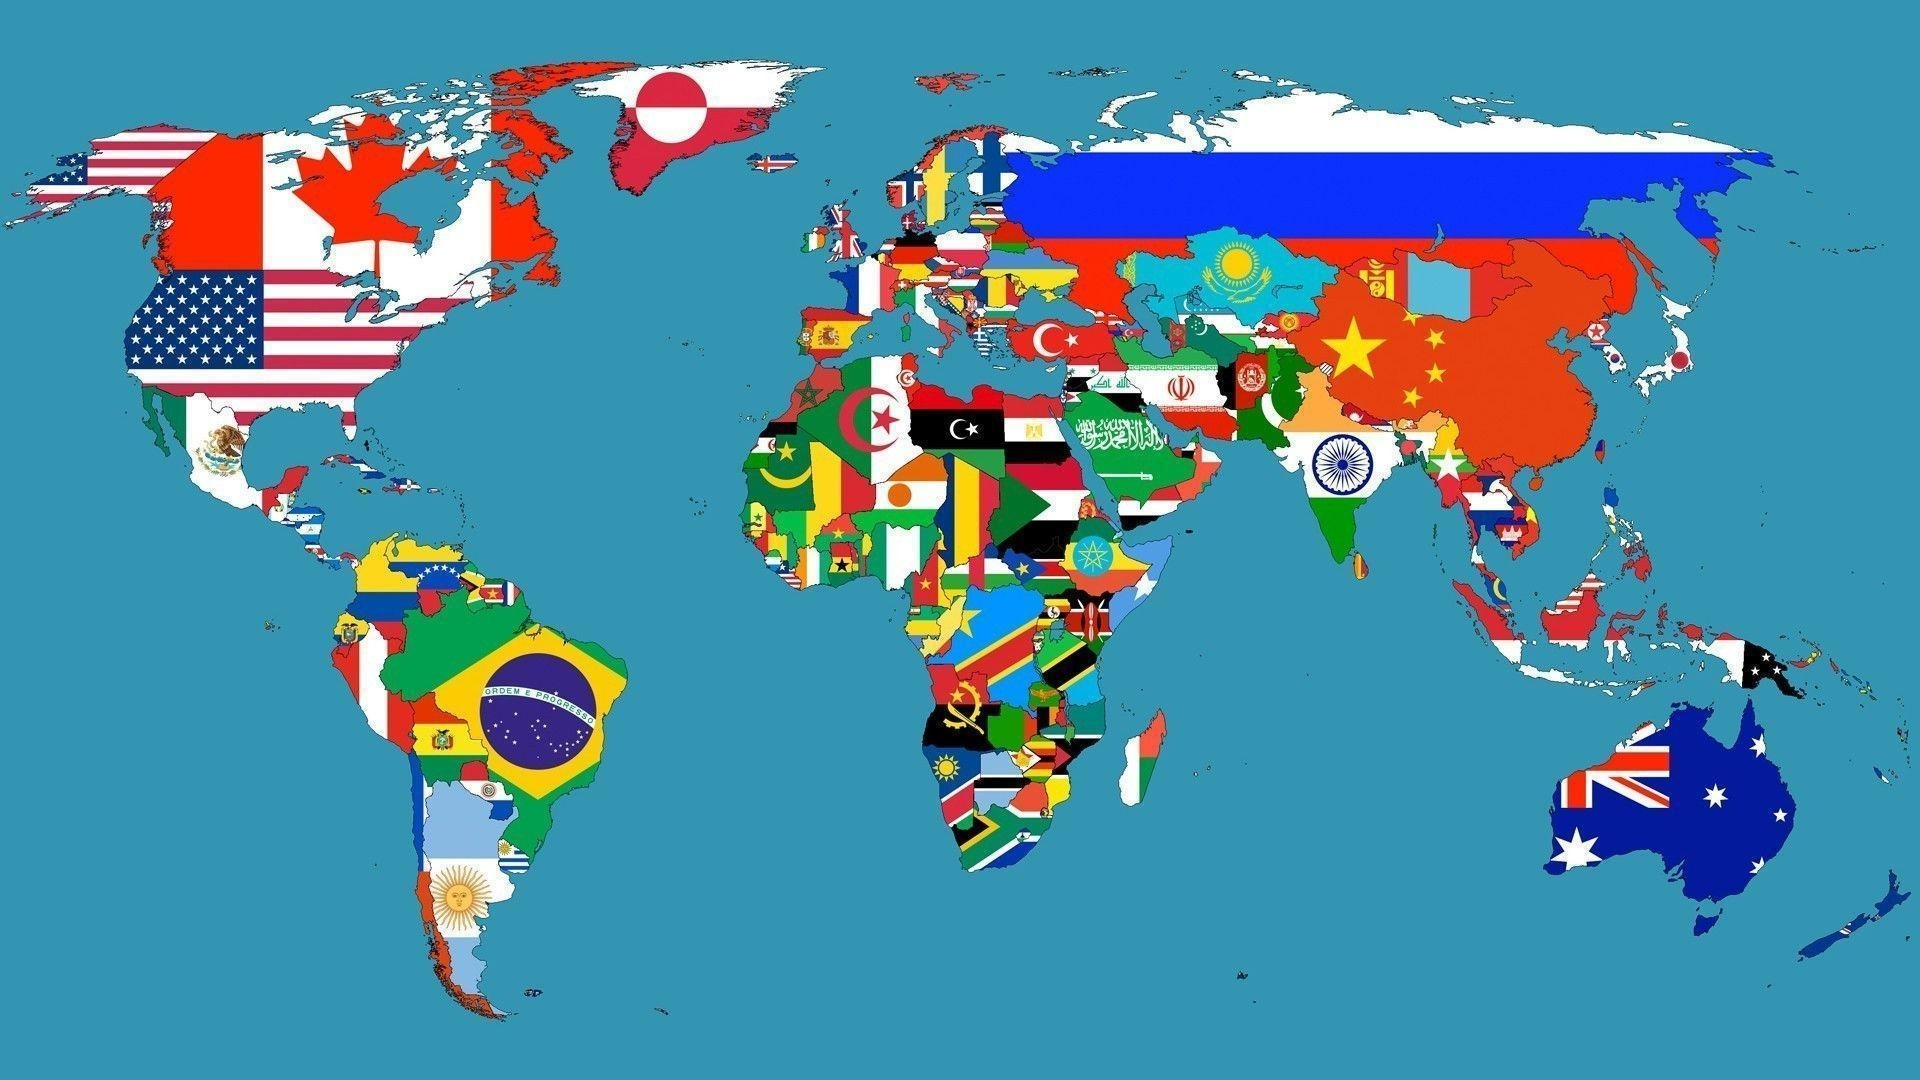 10 New World Map Hd Image Full Hd 1920 1080 For Pc Desktop 2018 Free